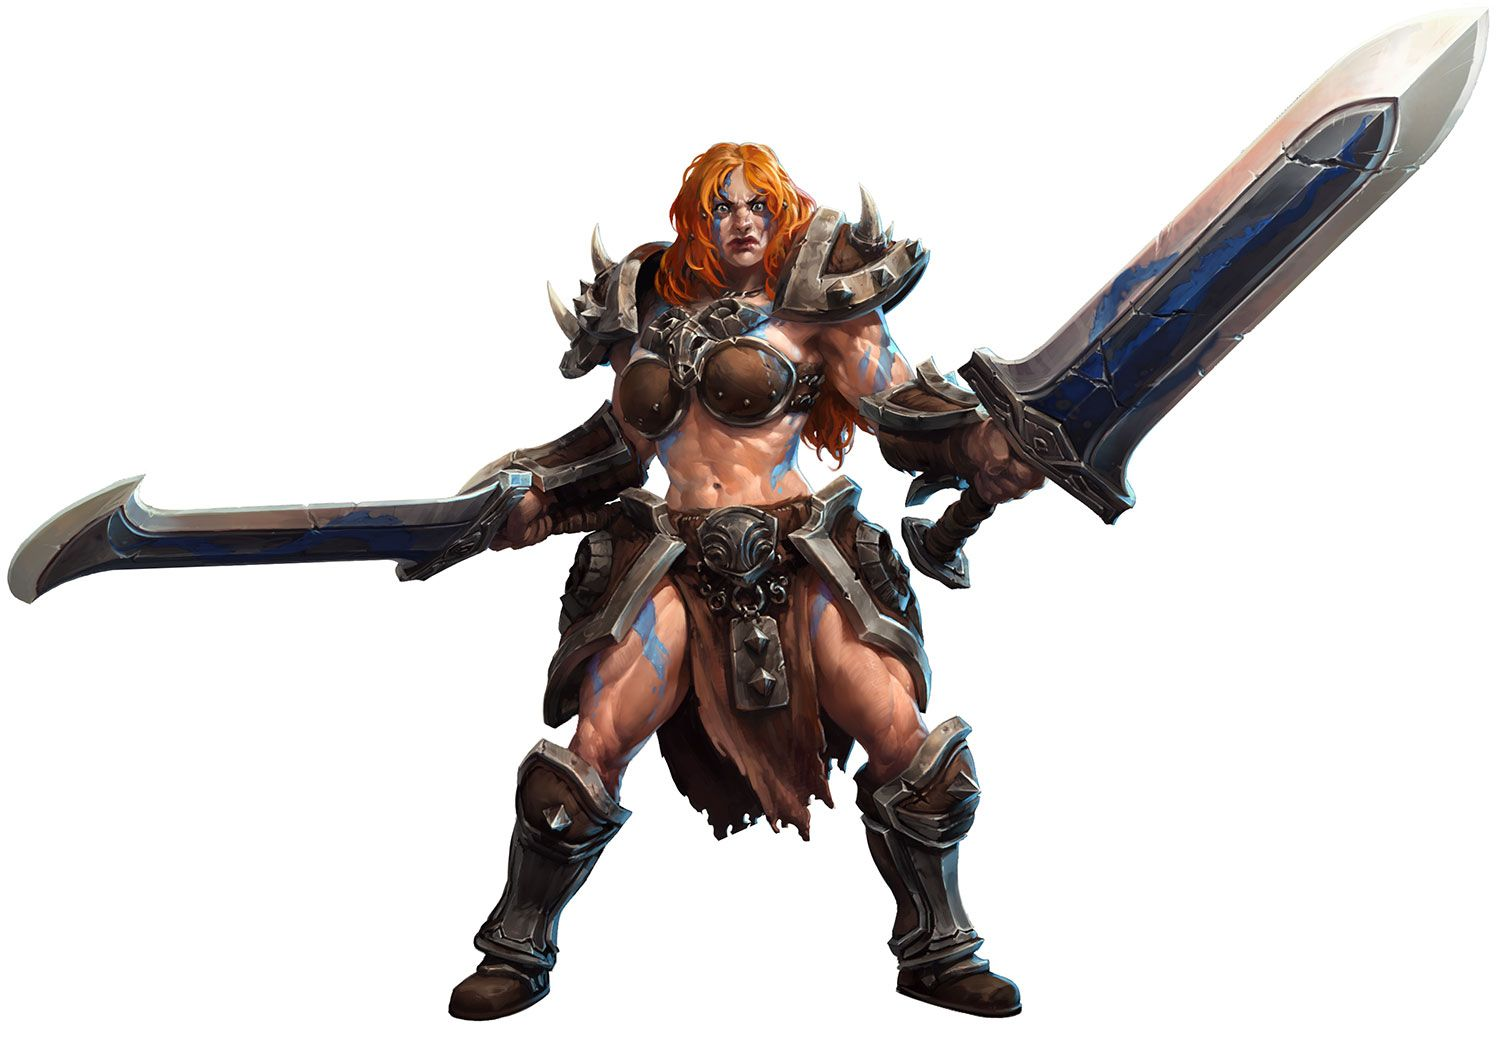 Sonya From Heroes Of The Storm Illustration Artwork Gaming Videogames Heroes Of The Storm Character Art Storm Art Dang, hots team, way to be on the ball with these! heroes of the storm character art